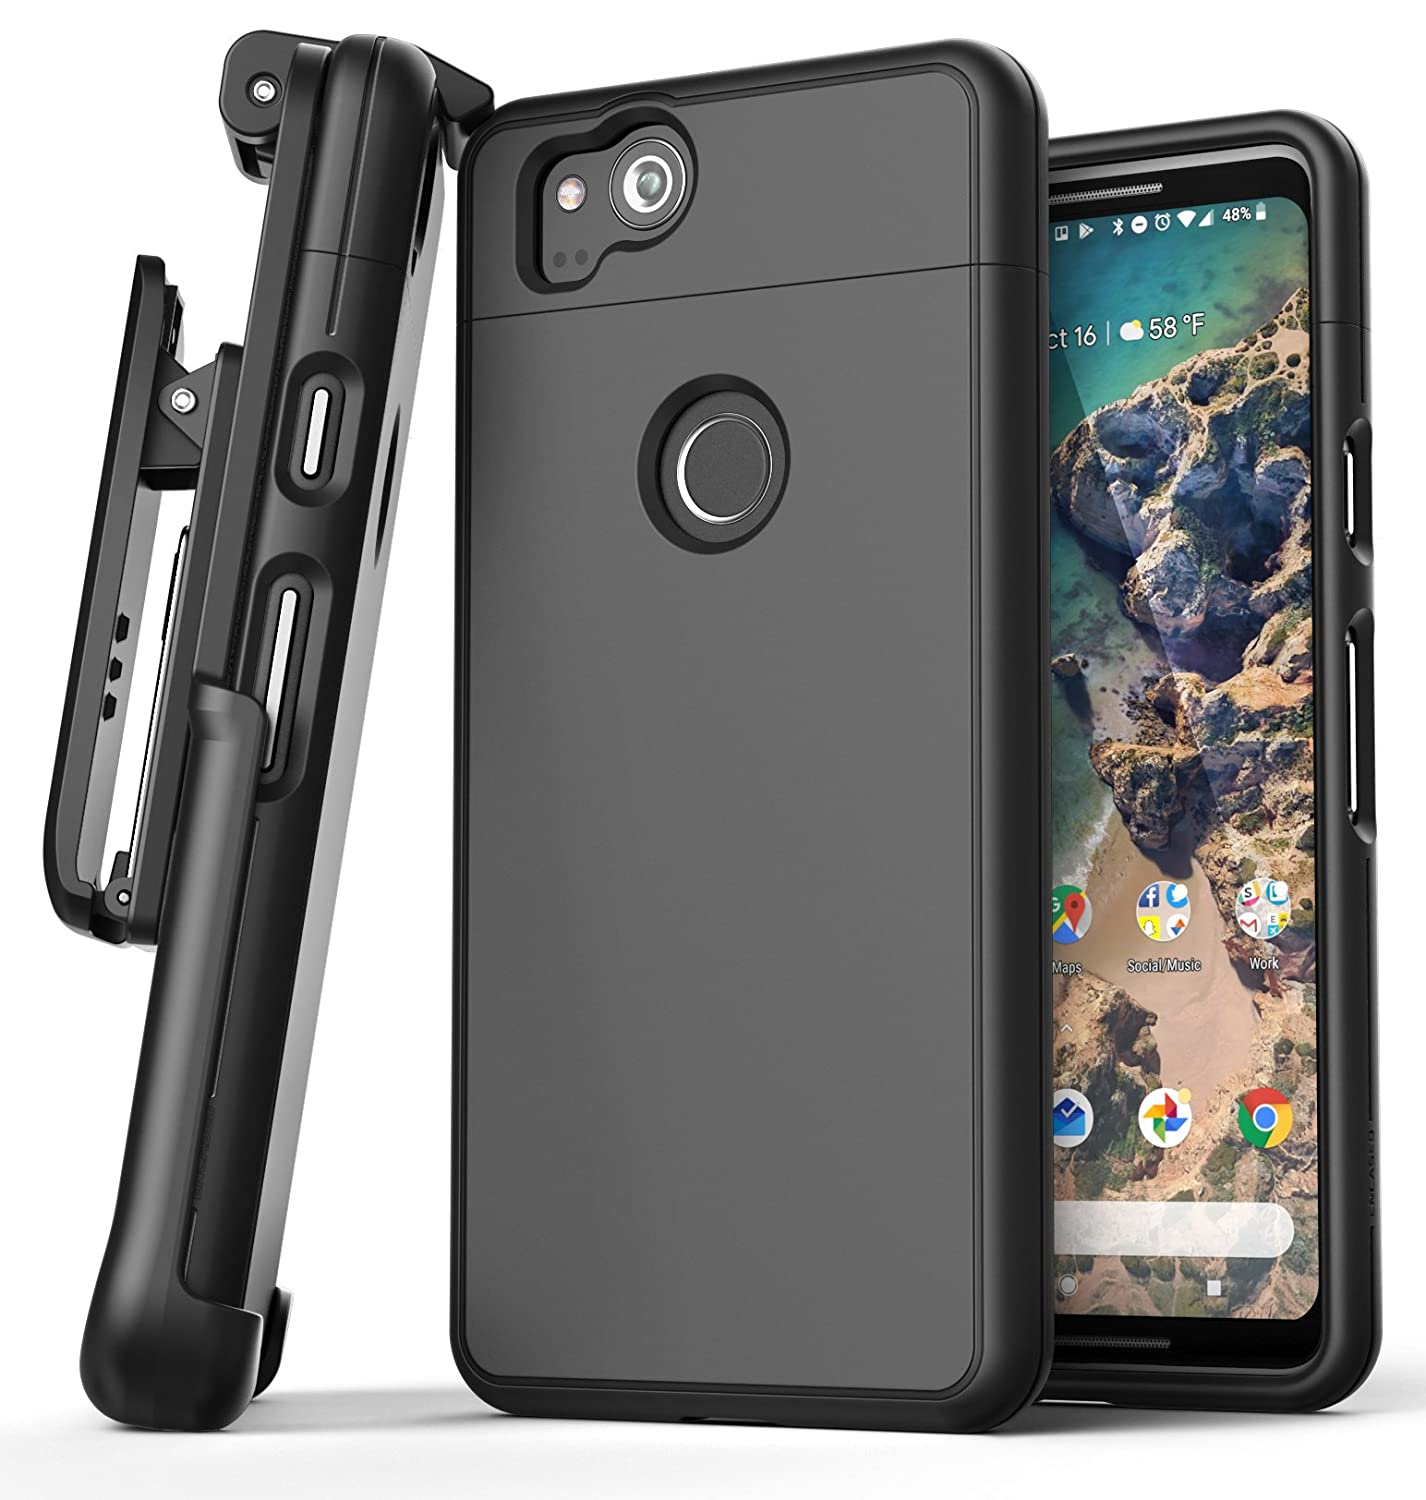 lowest price 5b786 1370a Google Pixel 2 XL Belt Case [SlimShield Edition] Protective Grip Case with  Holster Clip for Pixel 2 XL (Black) by Encased